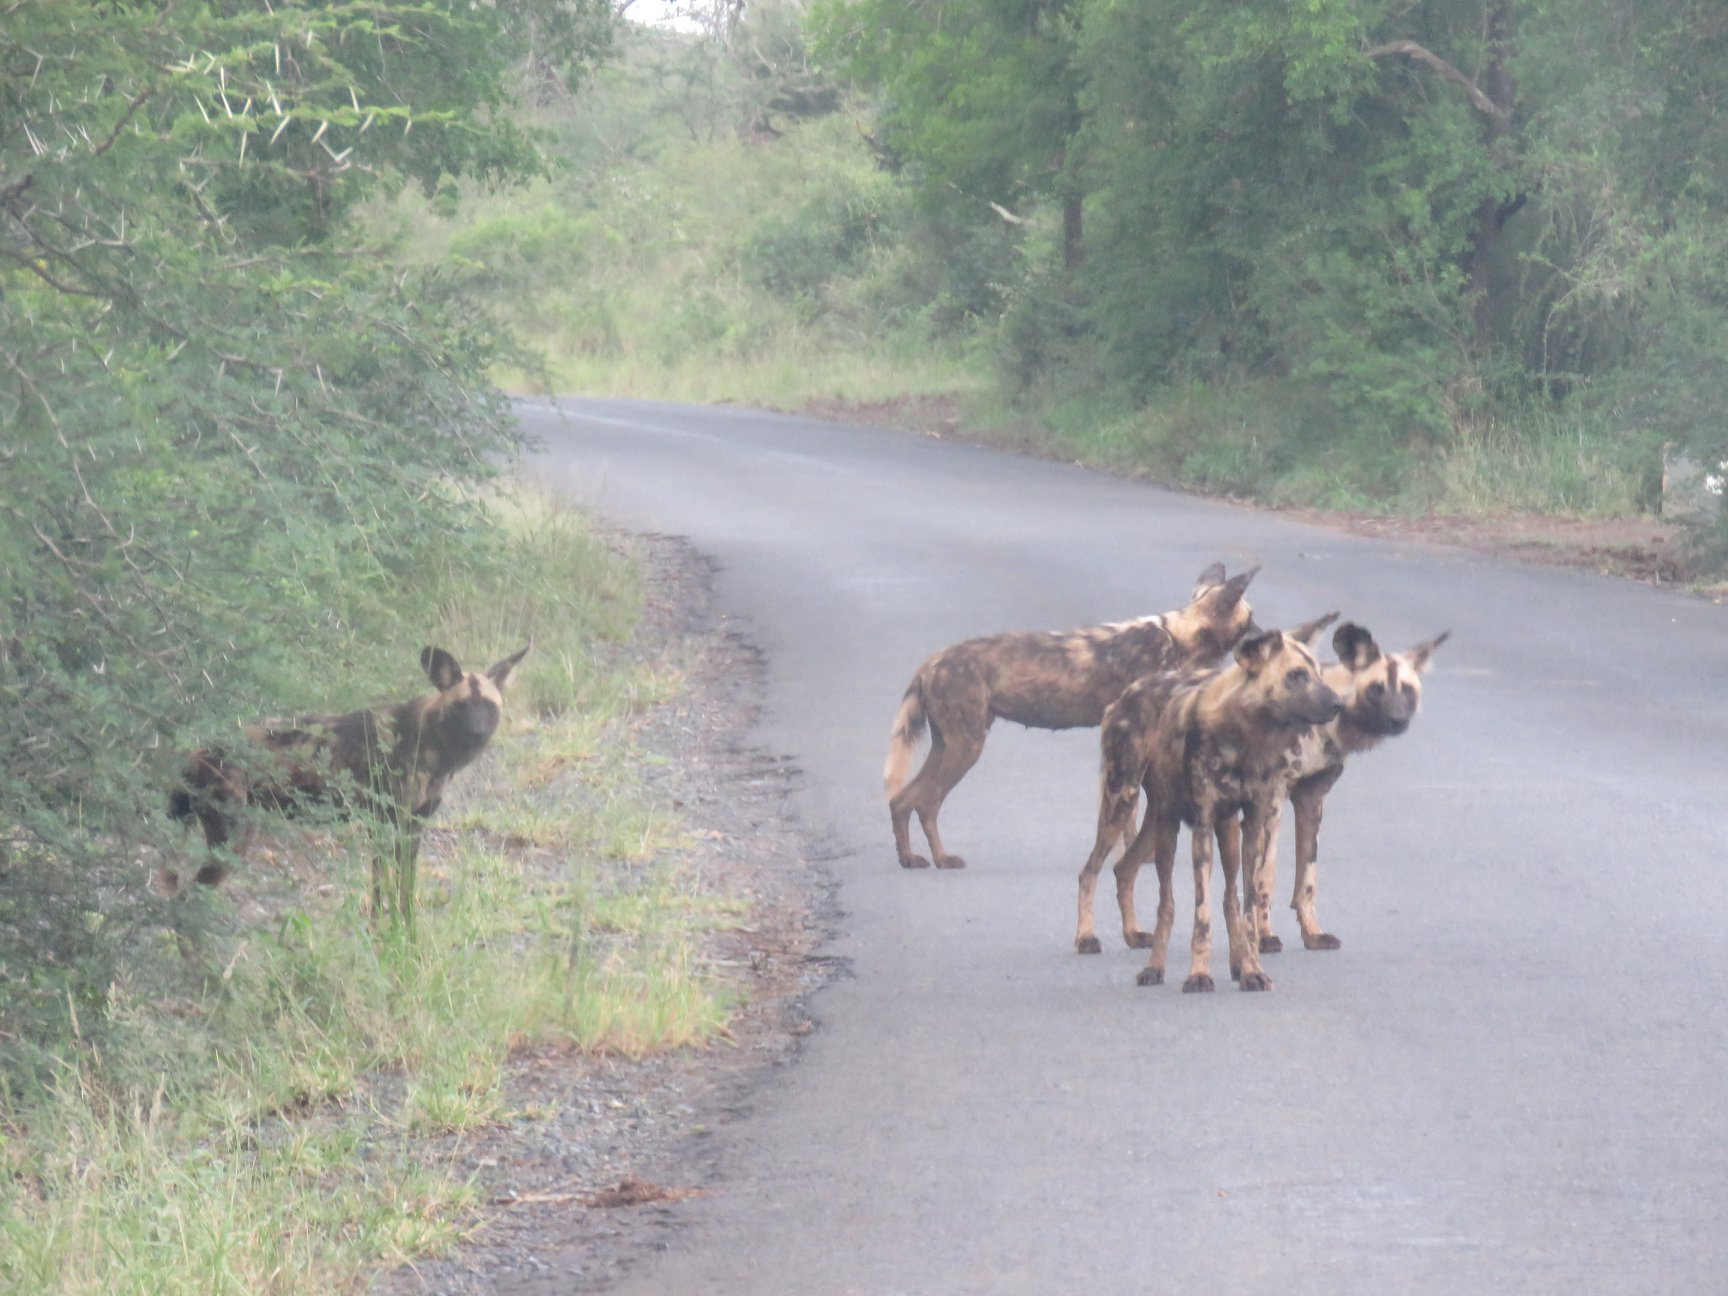 Wild dogs are rare to see